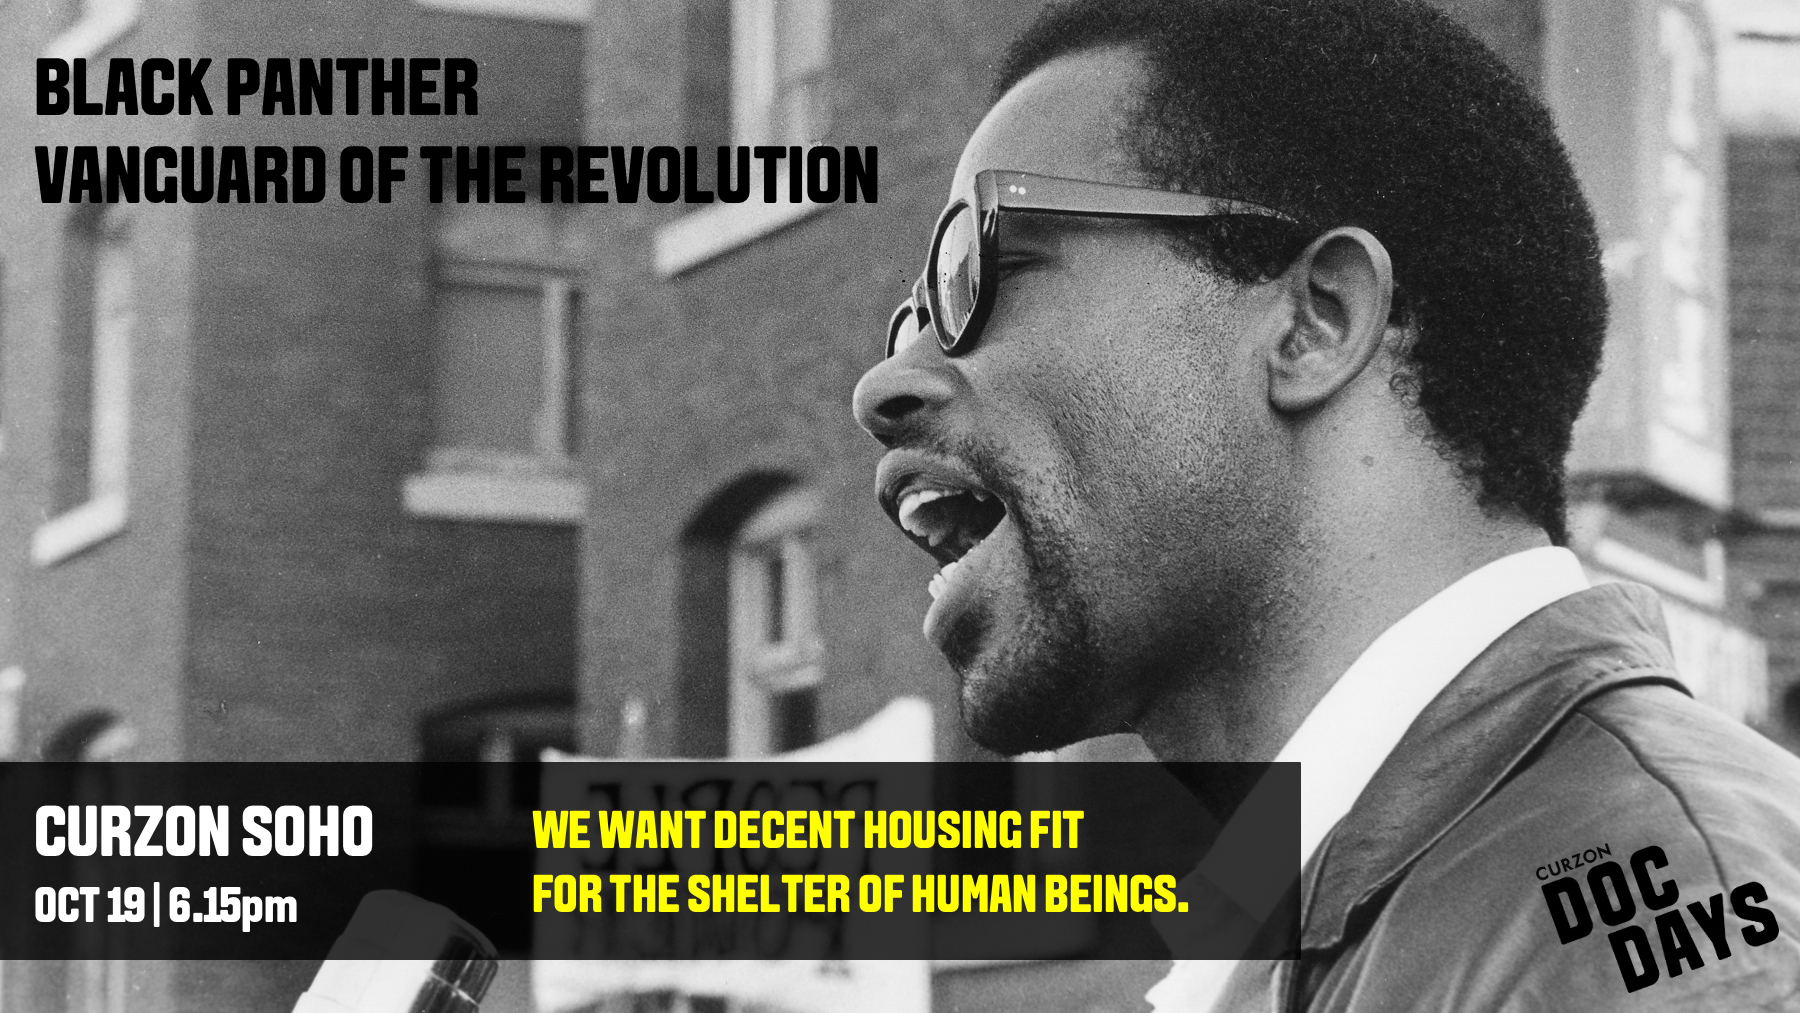 Black Panthers 4th point.jpg